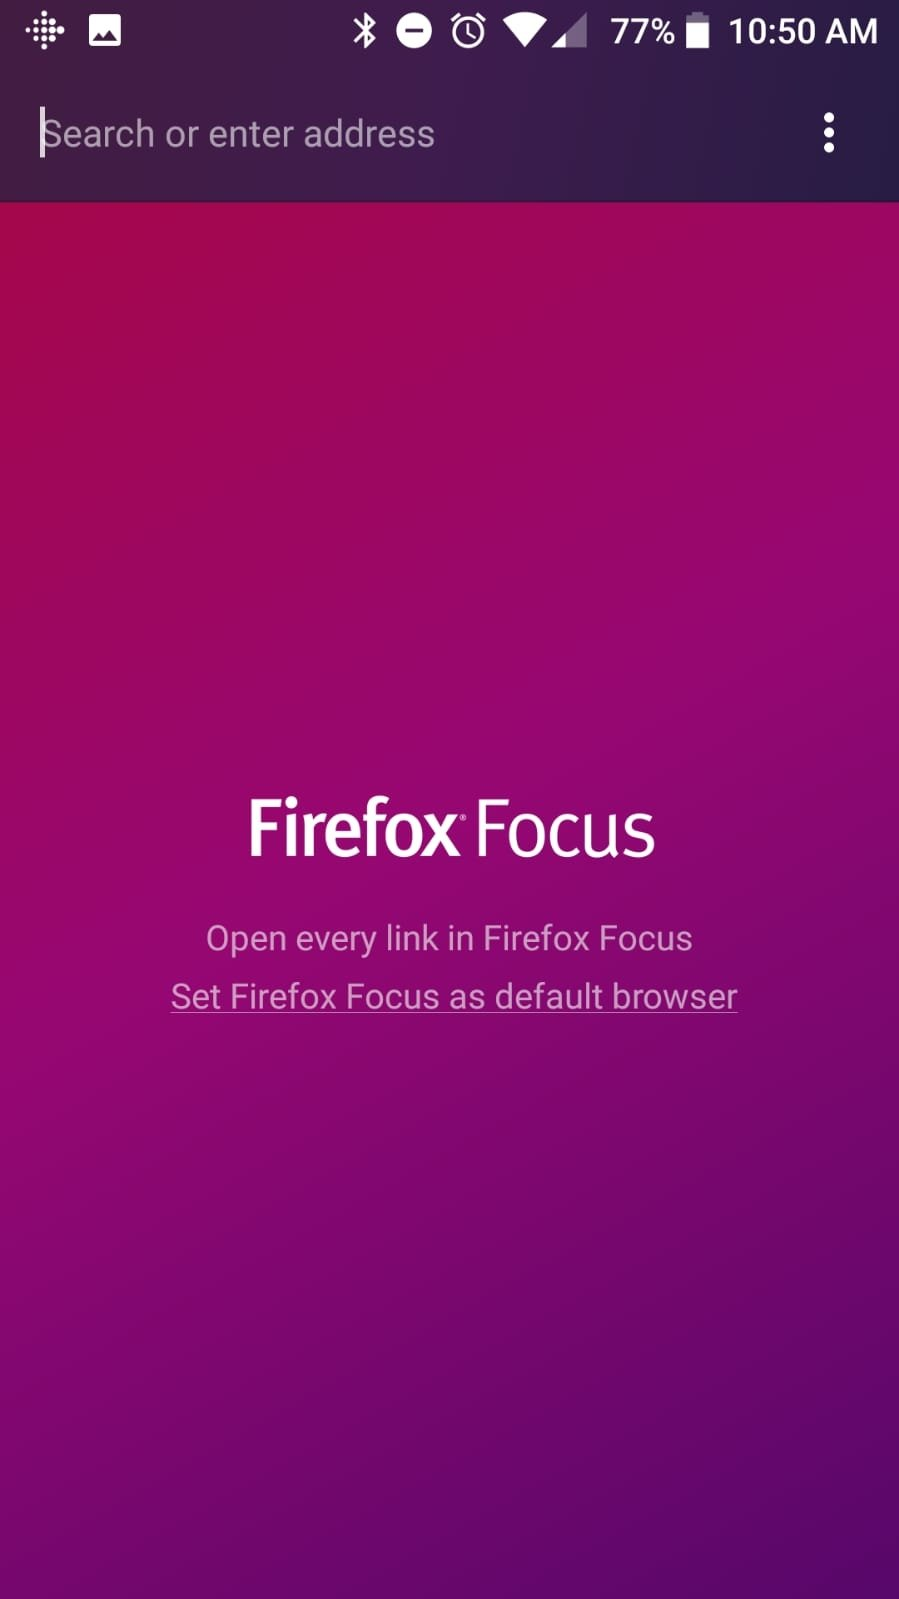 Firefox Focus Android image 2